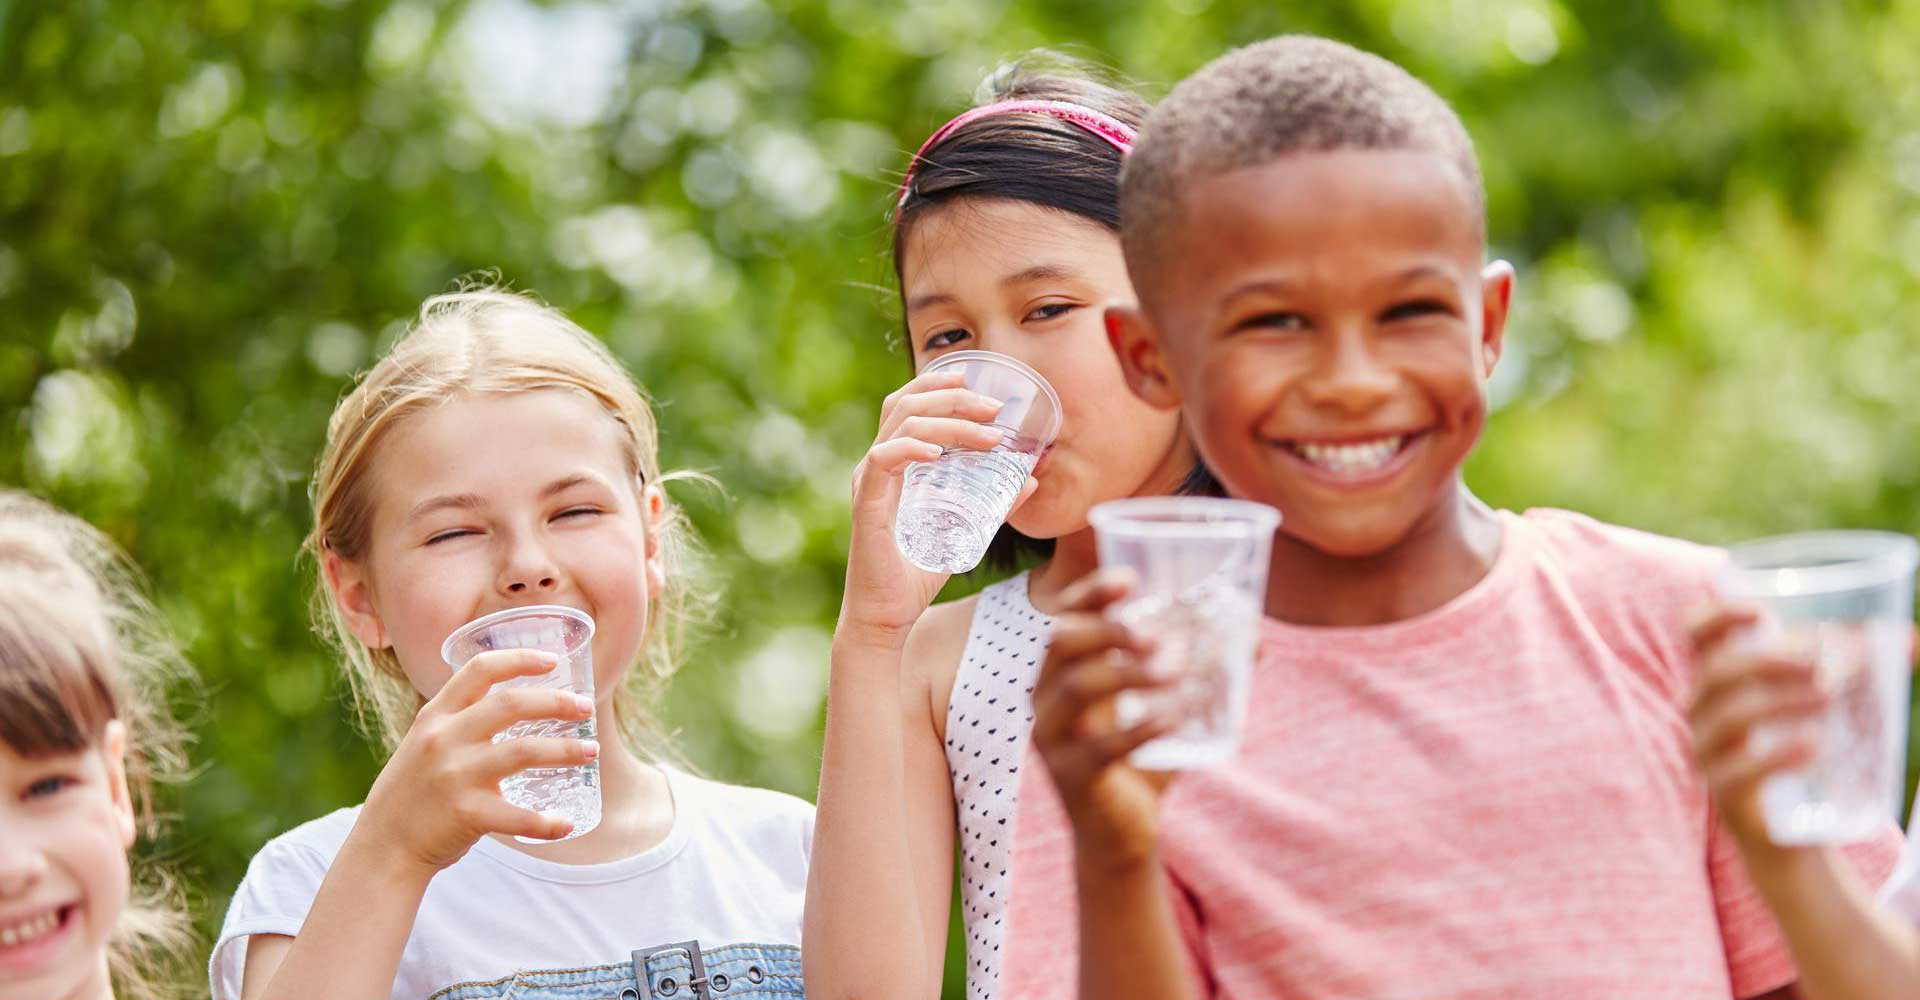 About the Drinking Water Toolkit - Drinking Water Toolkit